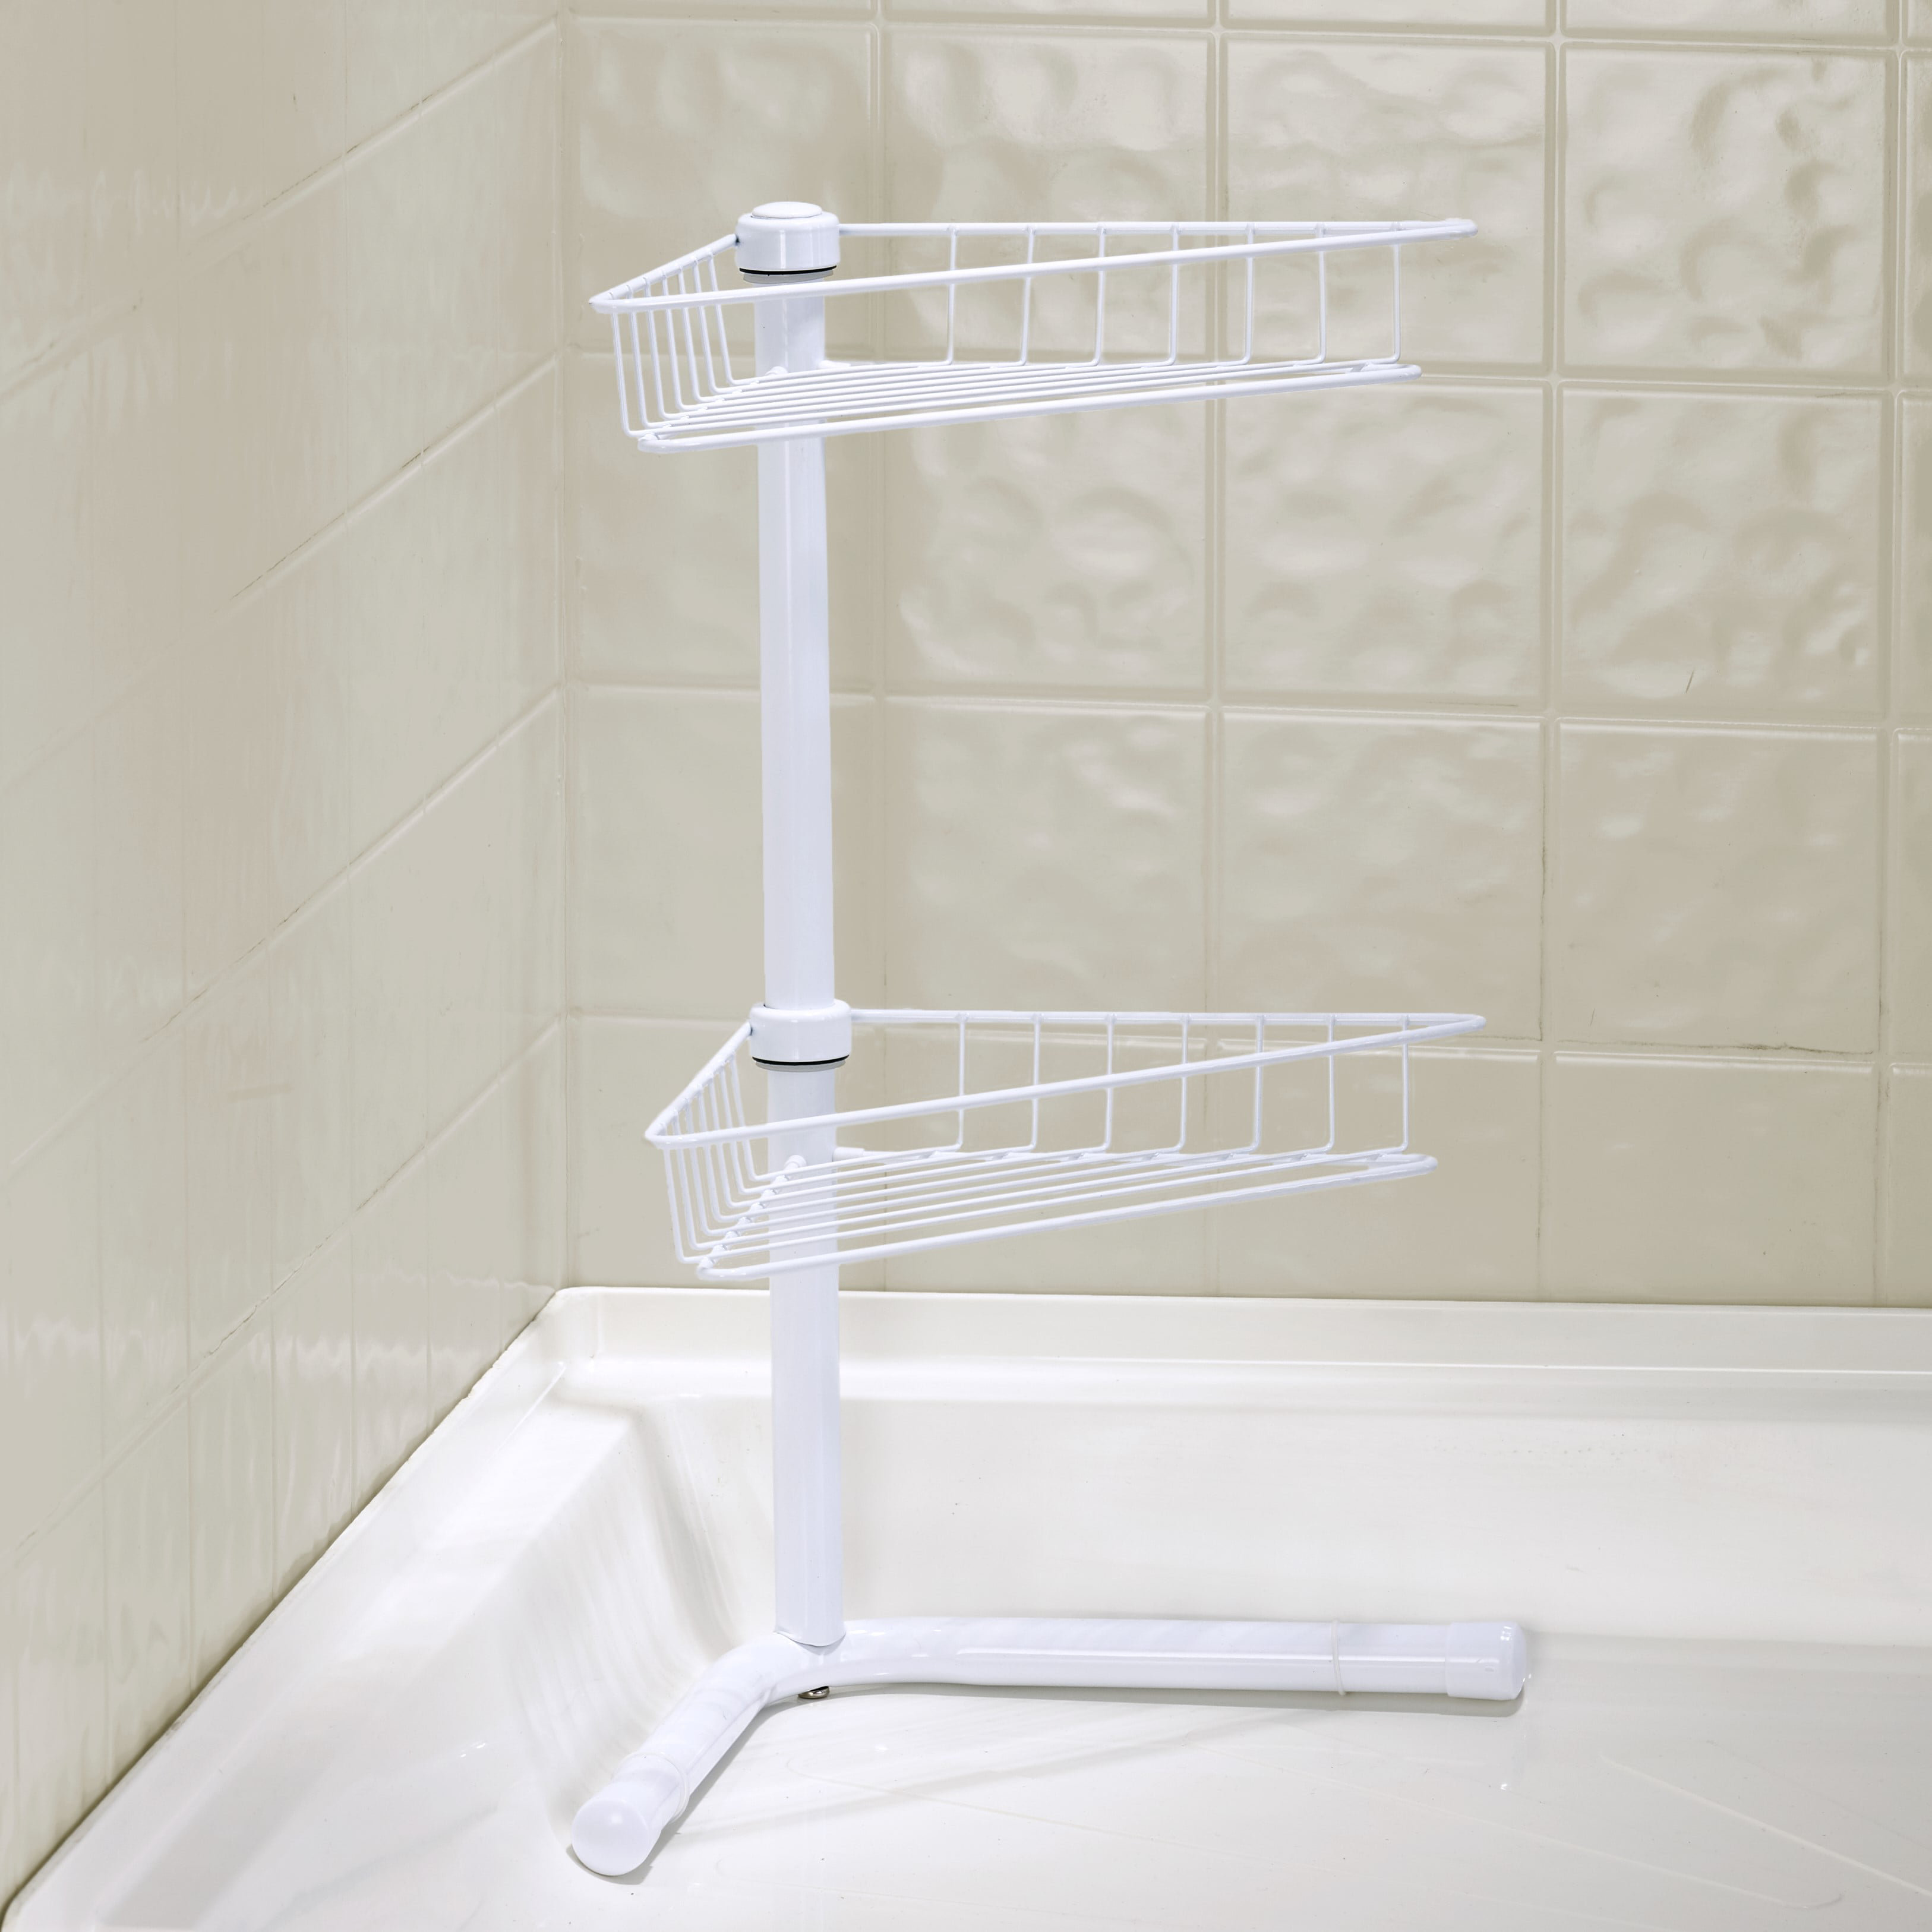 Free Standing Corner Bathroom Shelf 2 Tier Shower Organizer Caddy Walmart Com Walmart Com